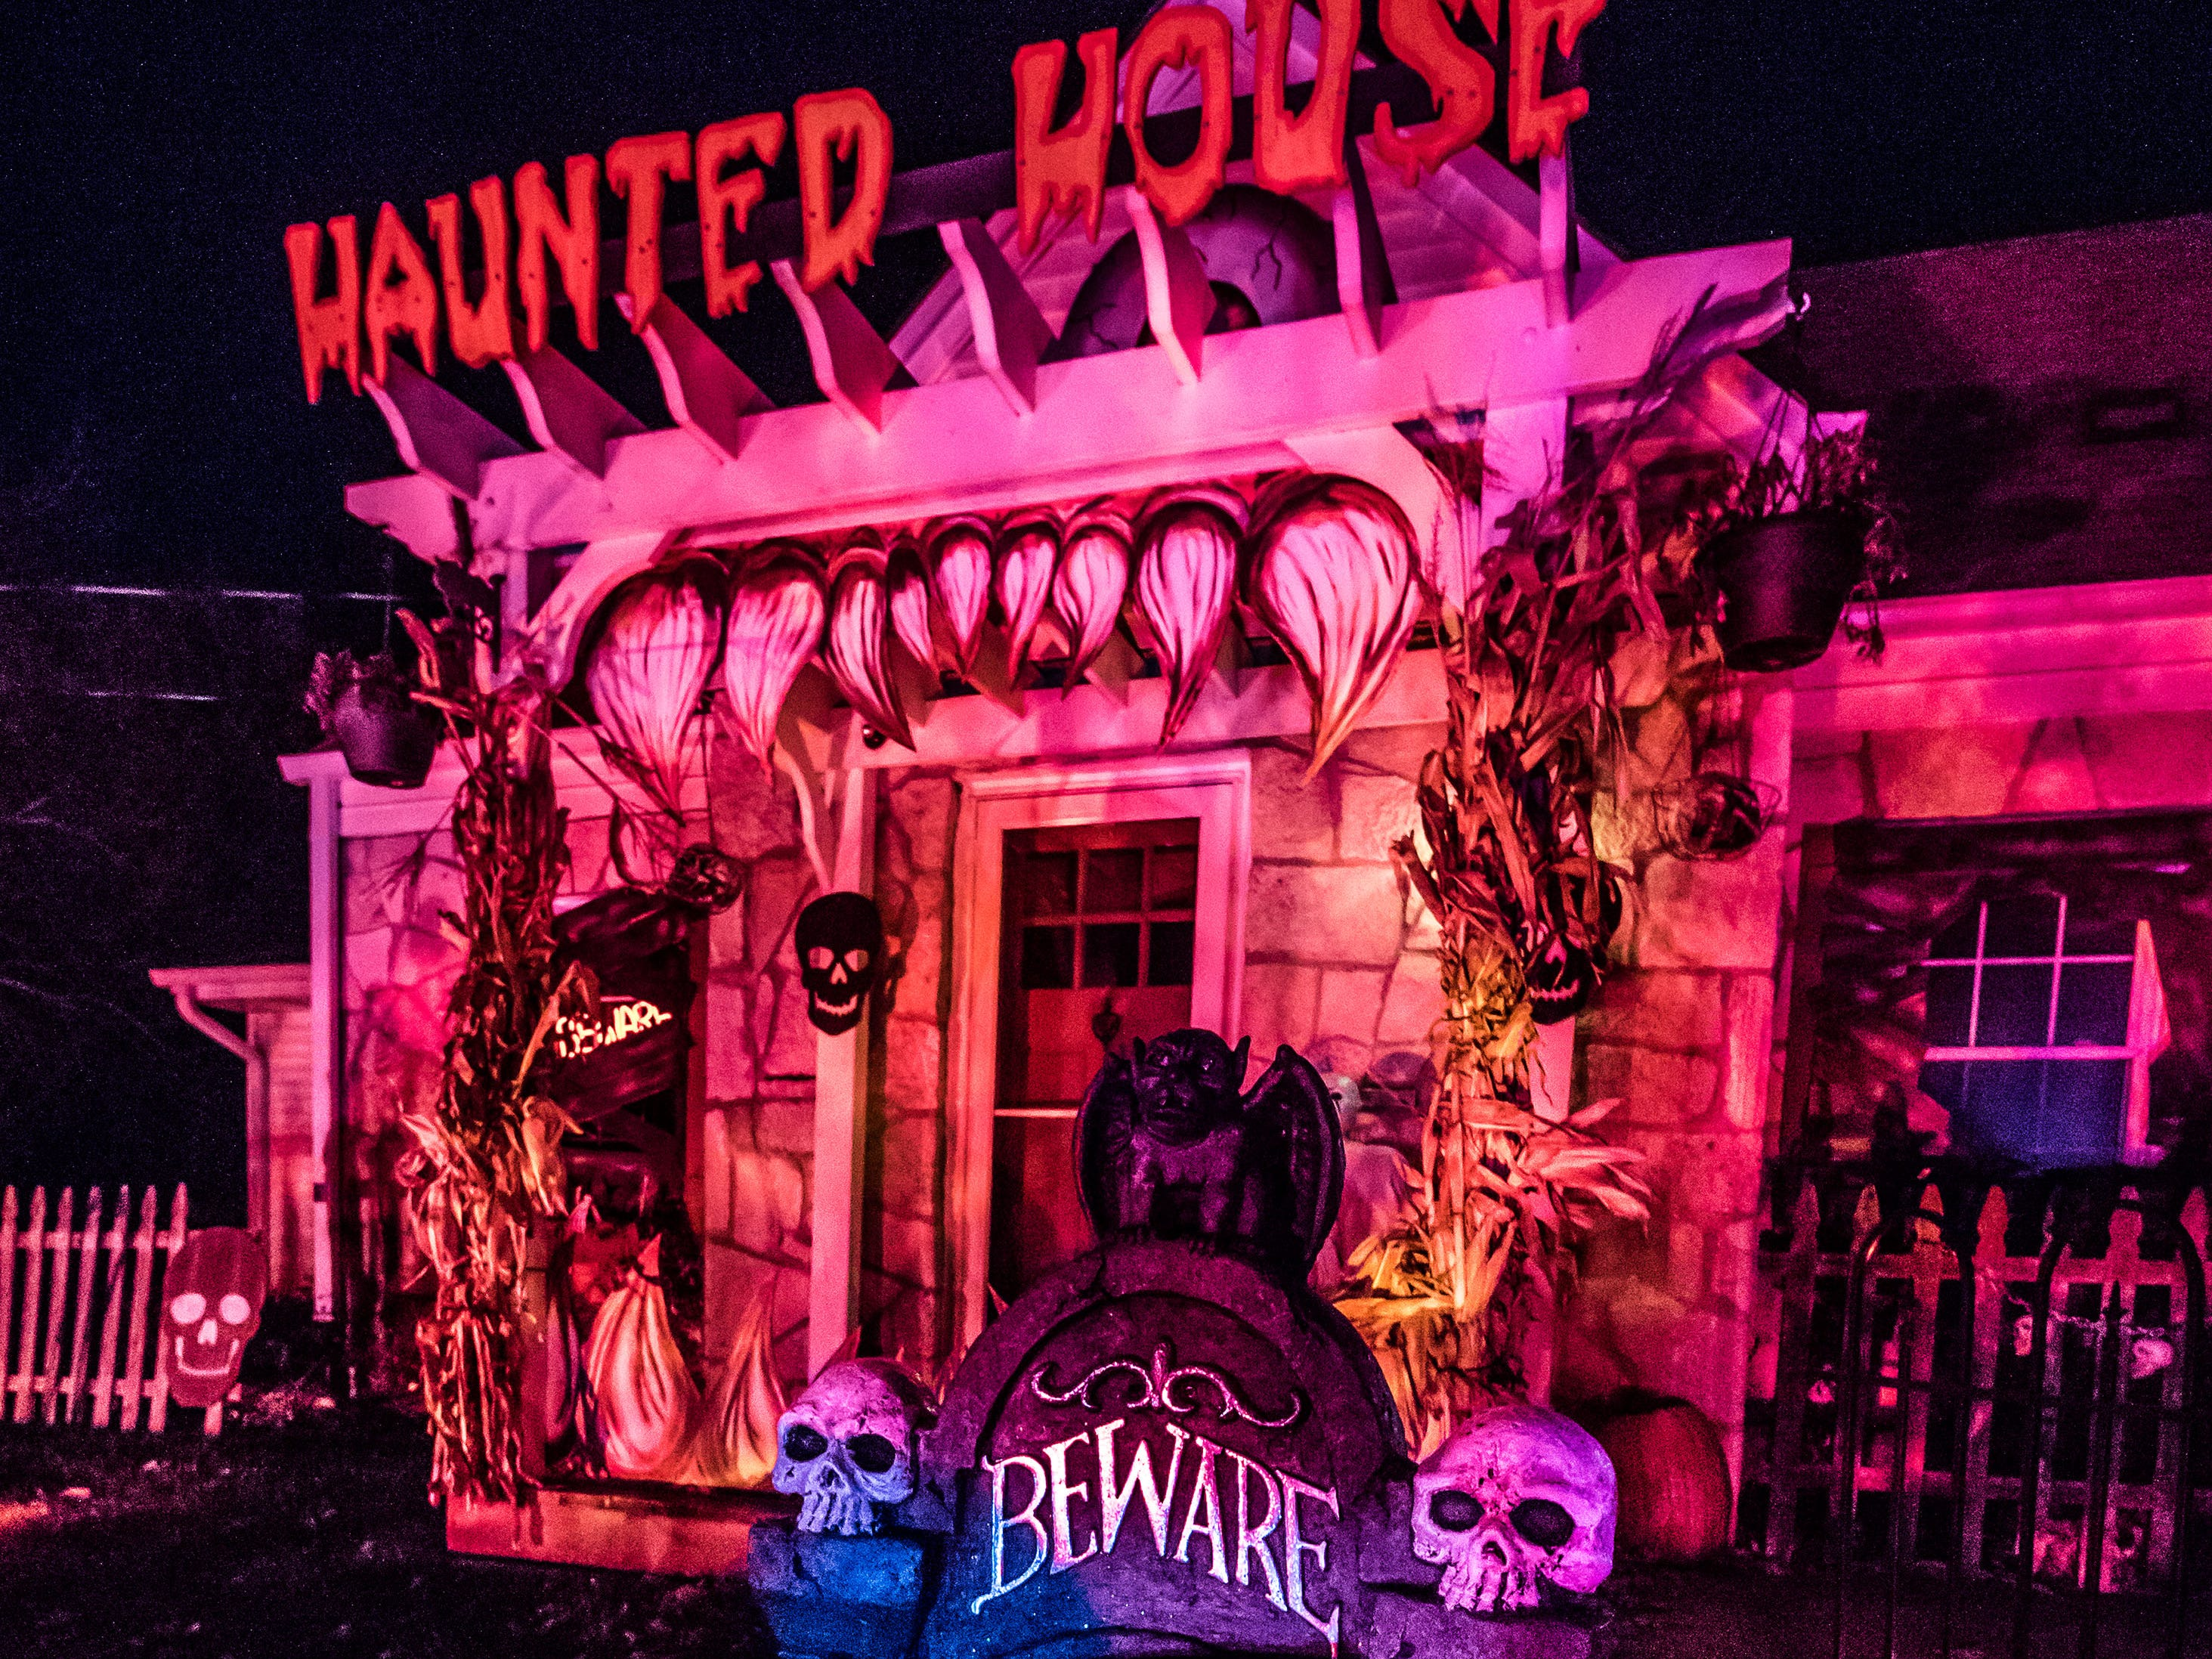 Elaborate Halloween decorations transform Bob Fuchs' Brookfield home into a forbidding haunted house as seen on Monday, Oct. 22, 2018. The display draws a large crowd of trick-or-treaters each year.